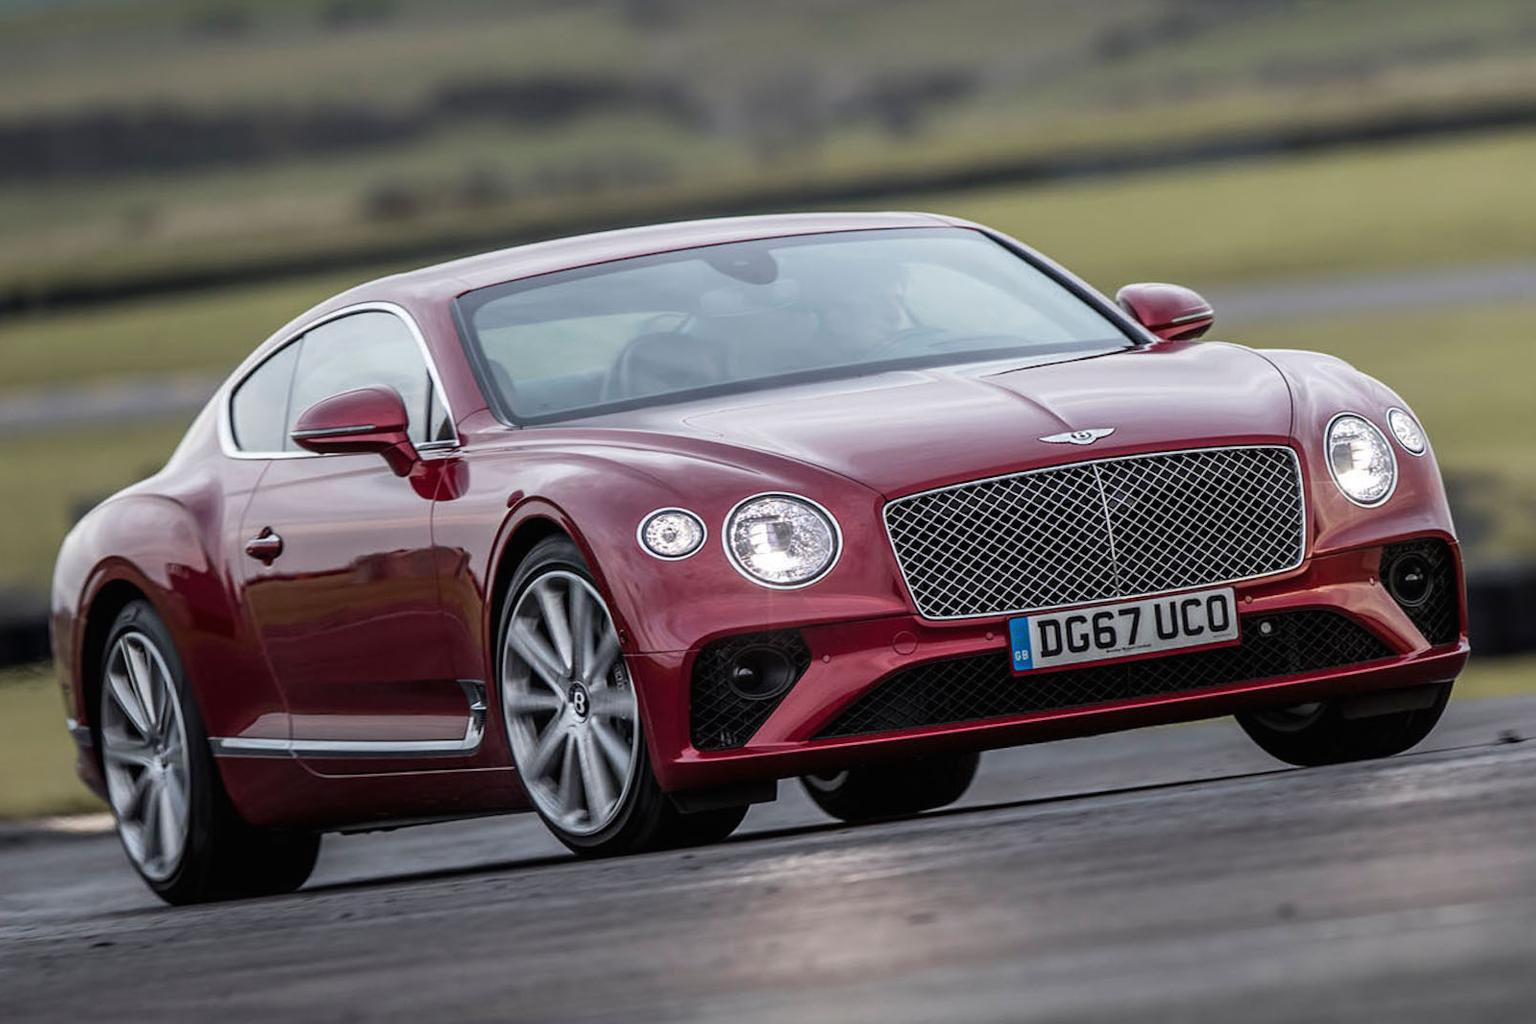 2018 Bentley Continental GT review - price, specs and release date